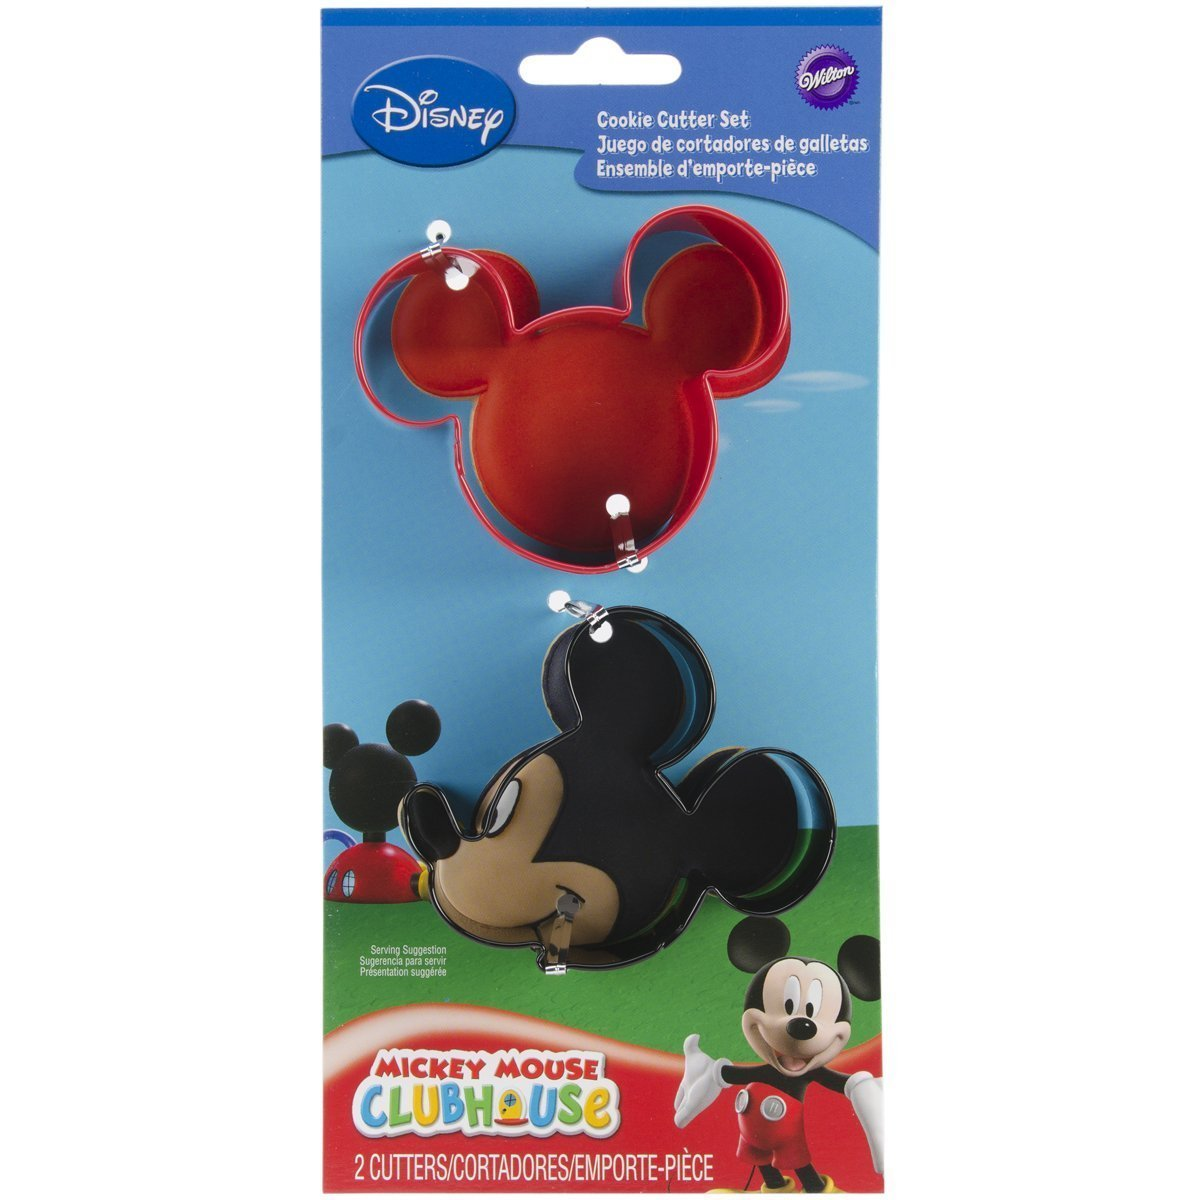 Mickey Mouse Cookie Cutters Fish Extender Gift Idea